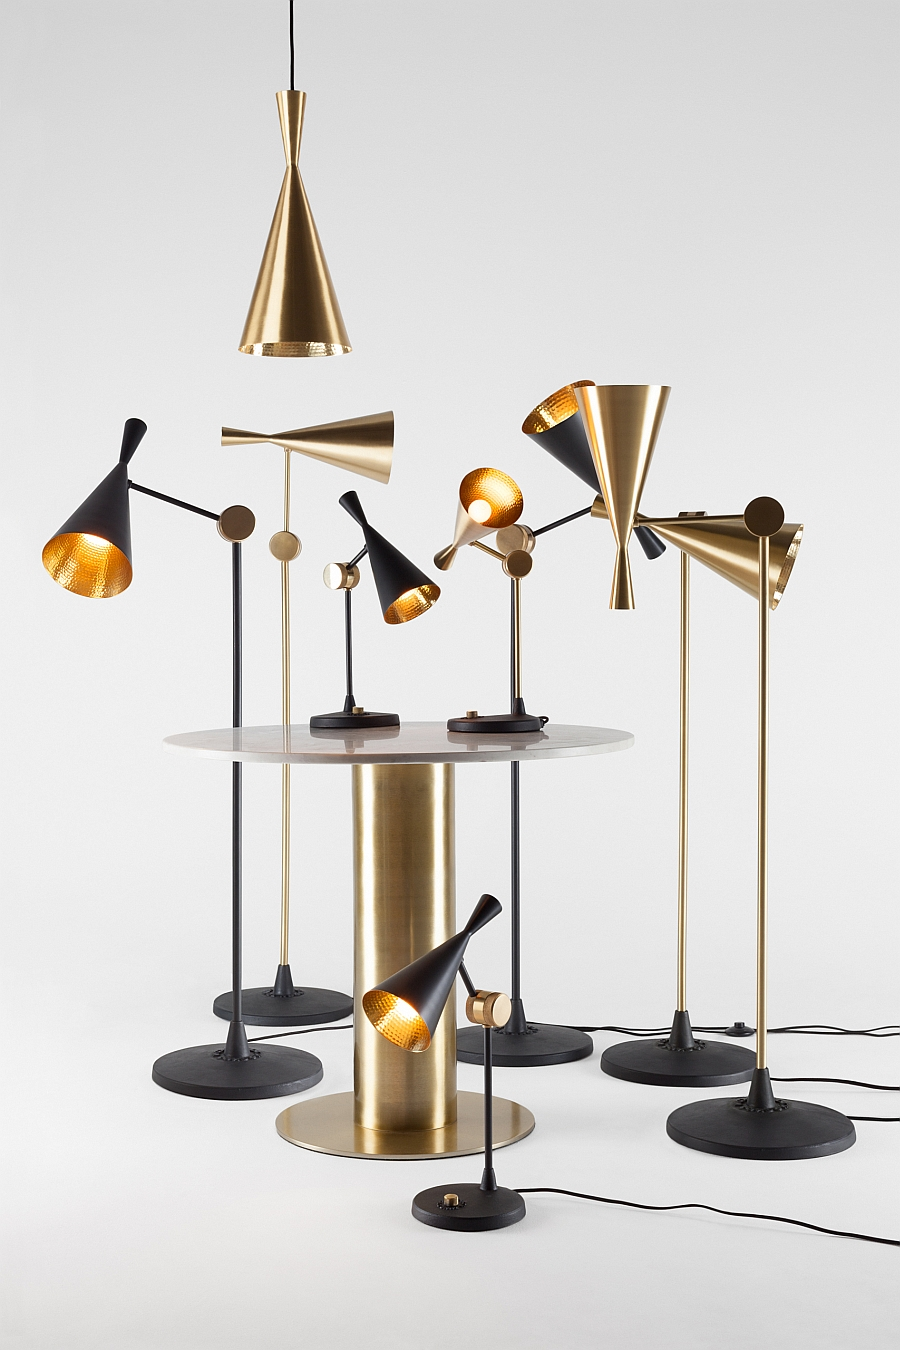 View In Gallery Beat Table And Floor Lamps From Tom Dixon